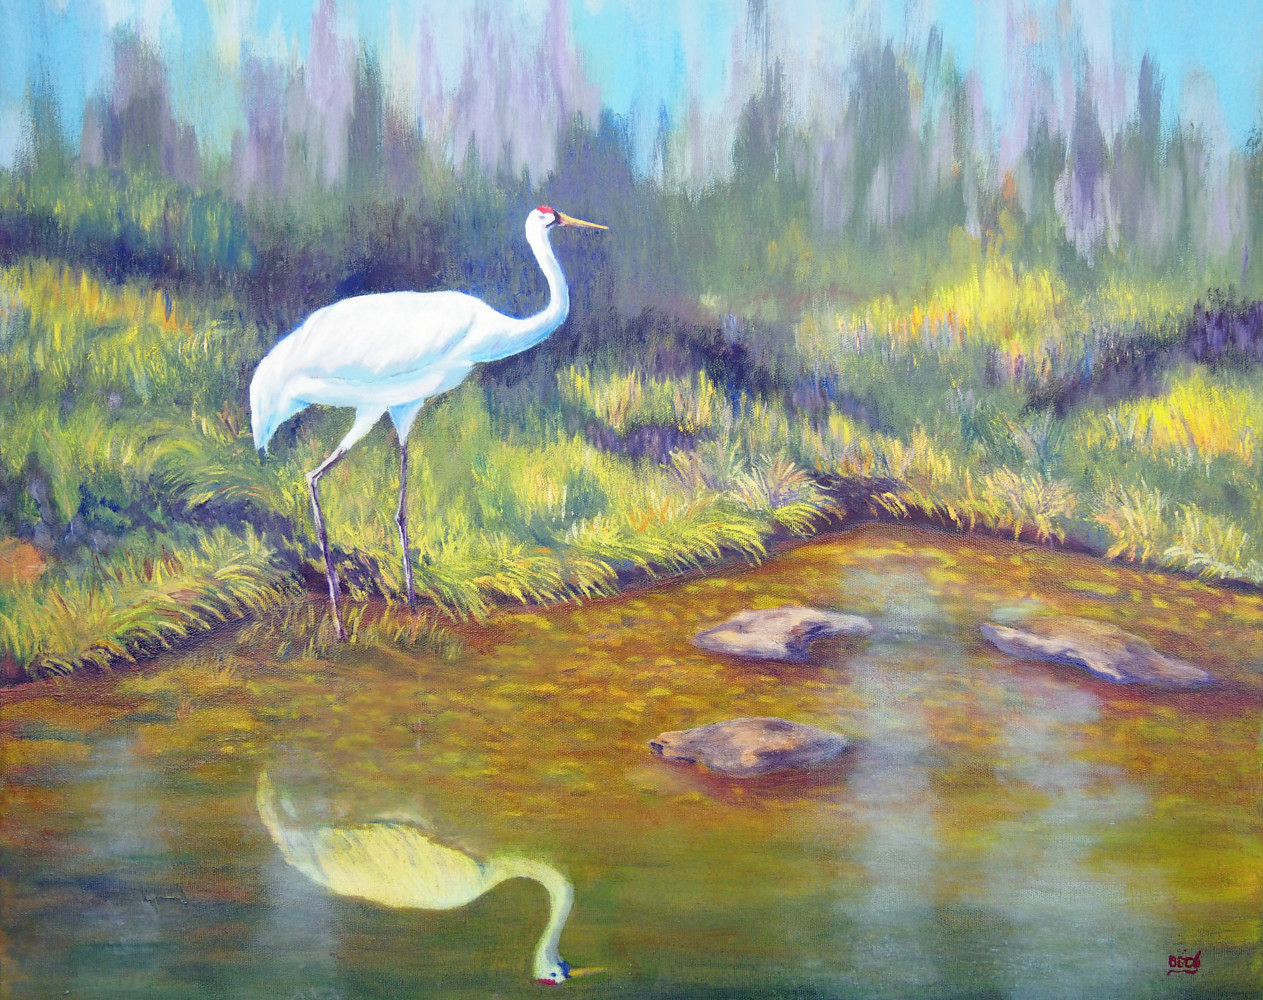 Oil painting Searching for Frogs - Whooping Crane by Brent Ciccone